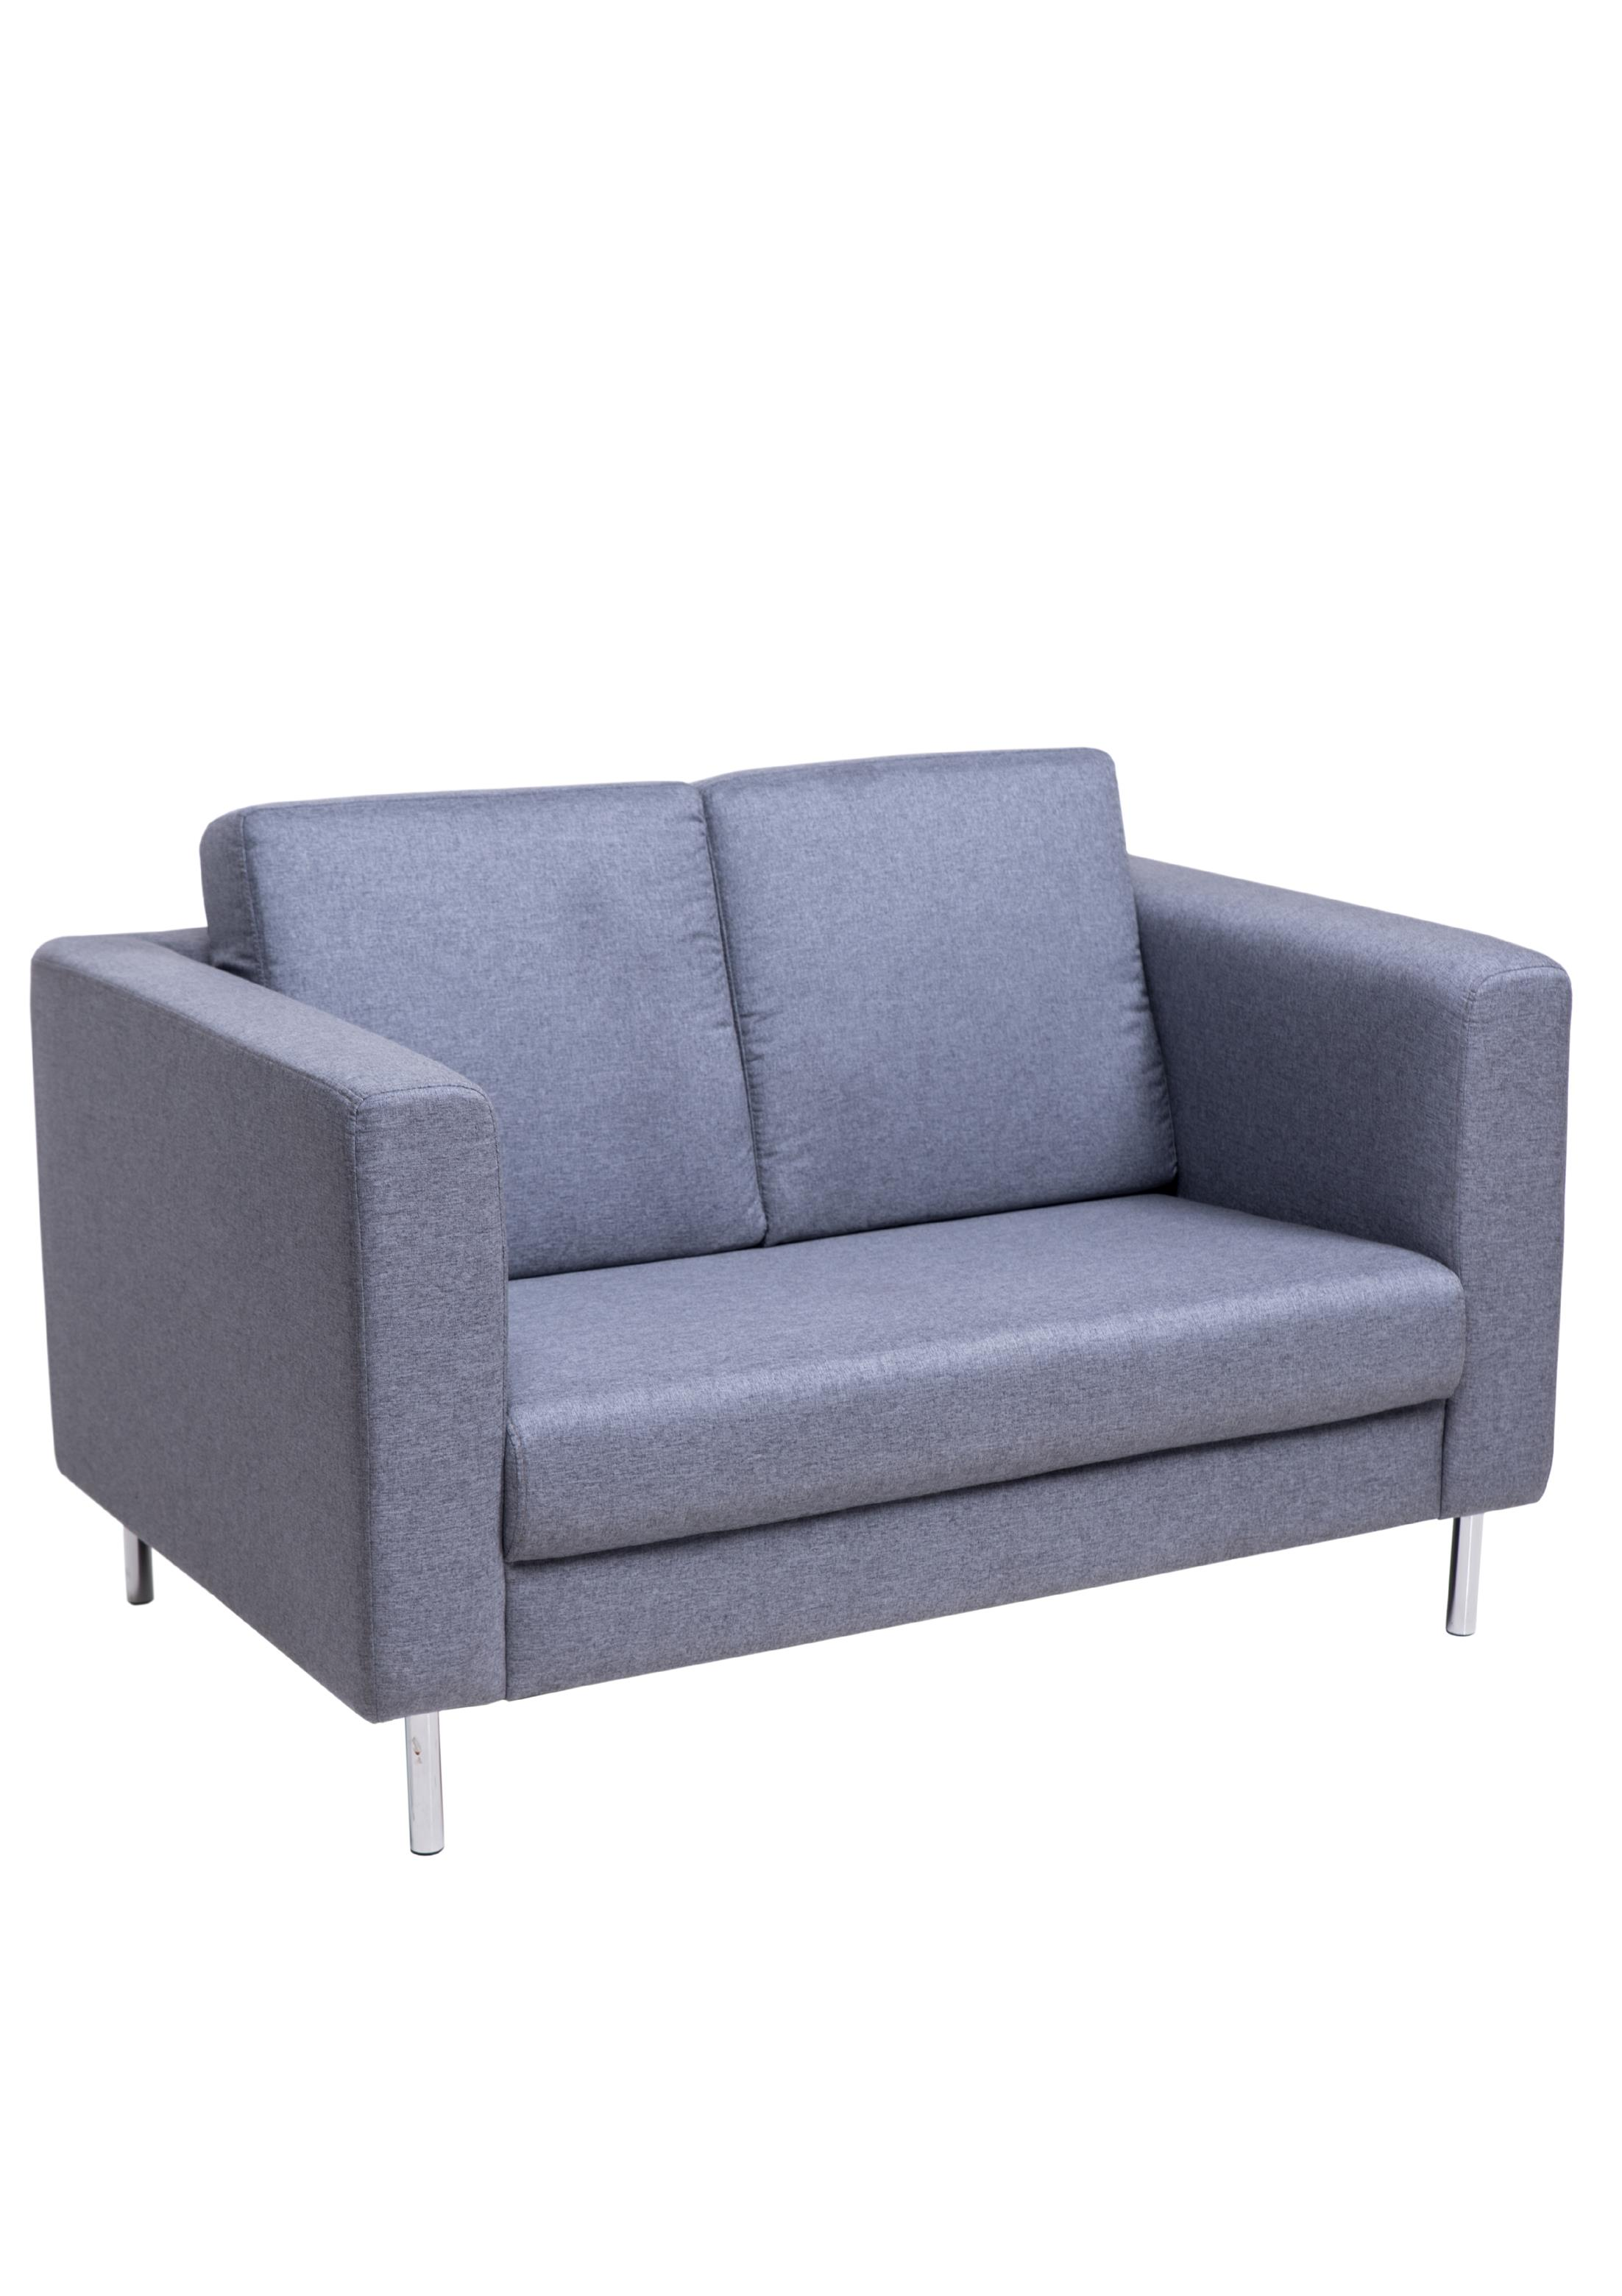 Sofa Zucca Double Seater Settee (ZC-1121-2S)